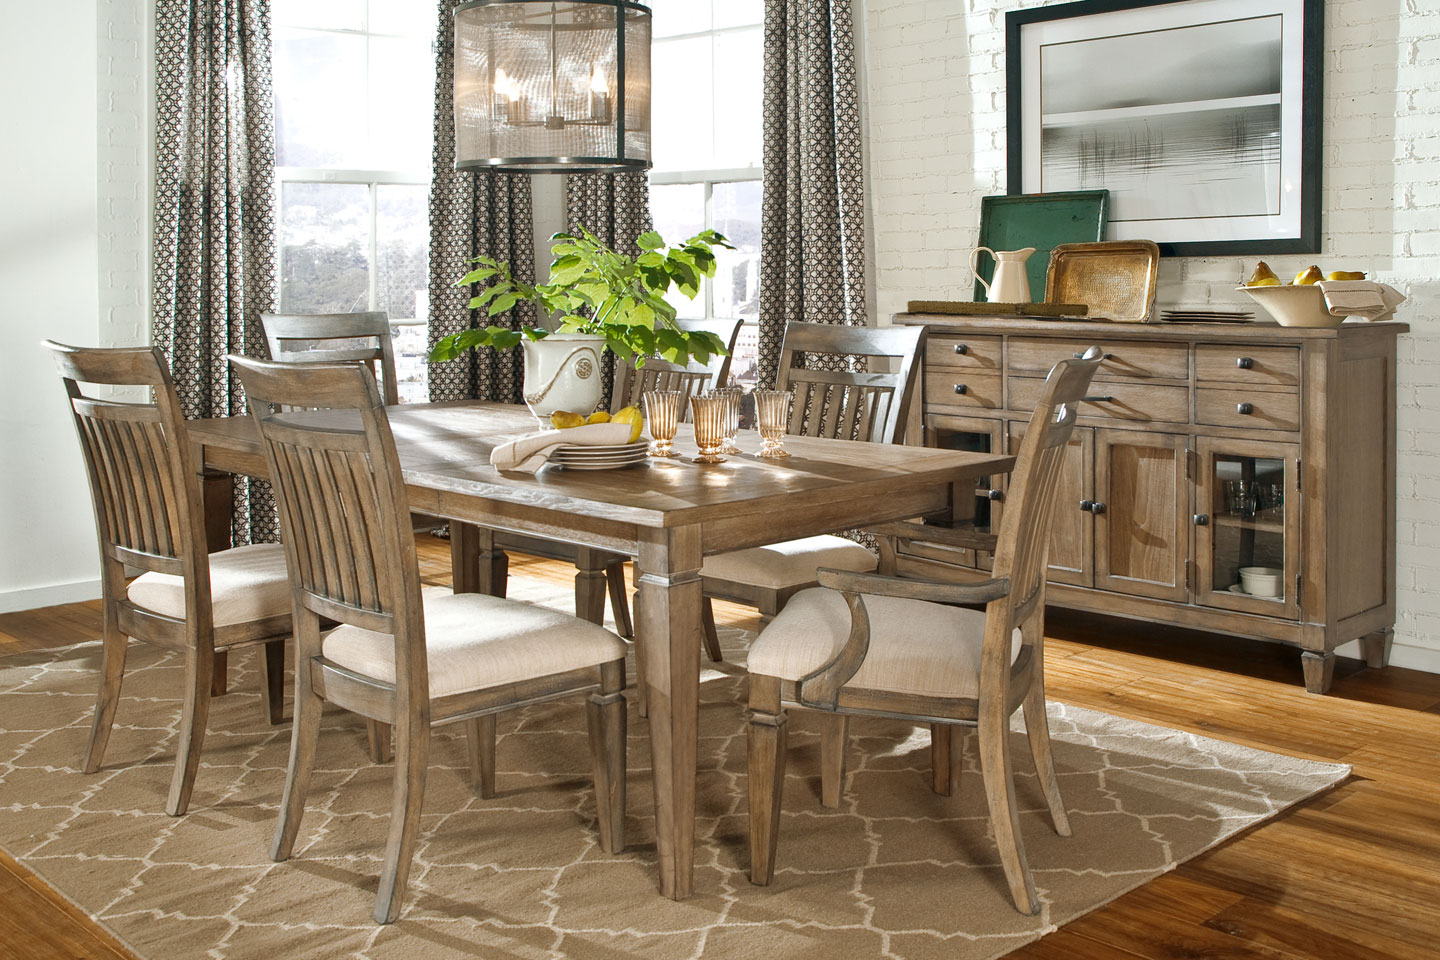 Gavin rustic dining room set dining furniture - Houston dining room furniture ideas ...